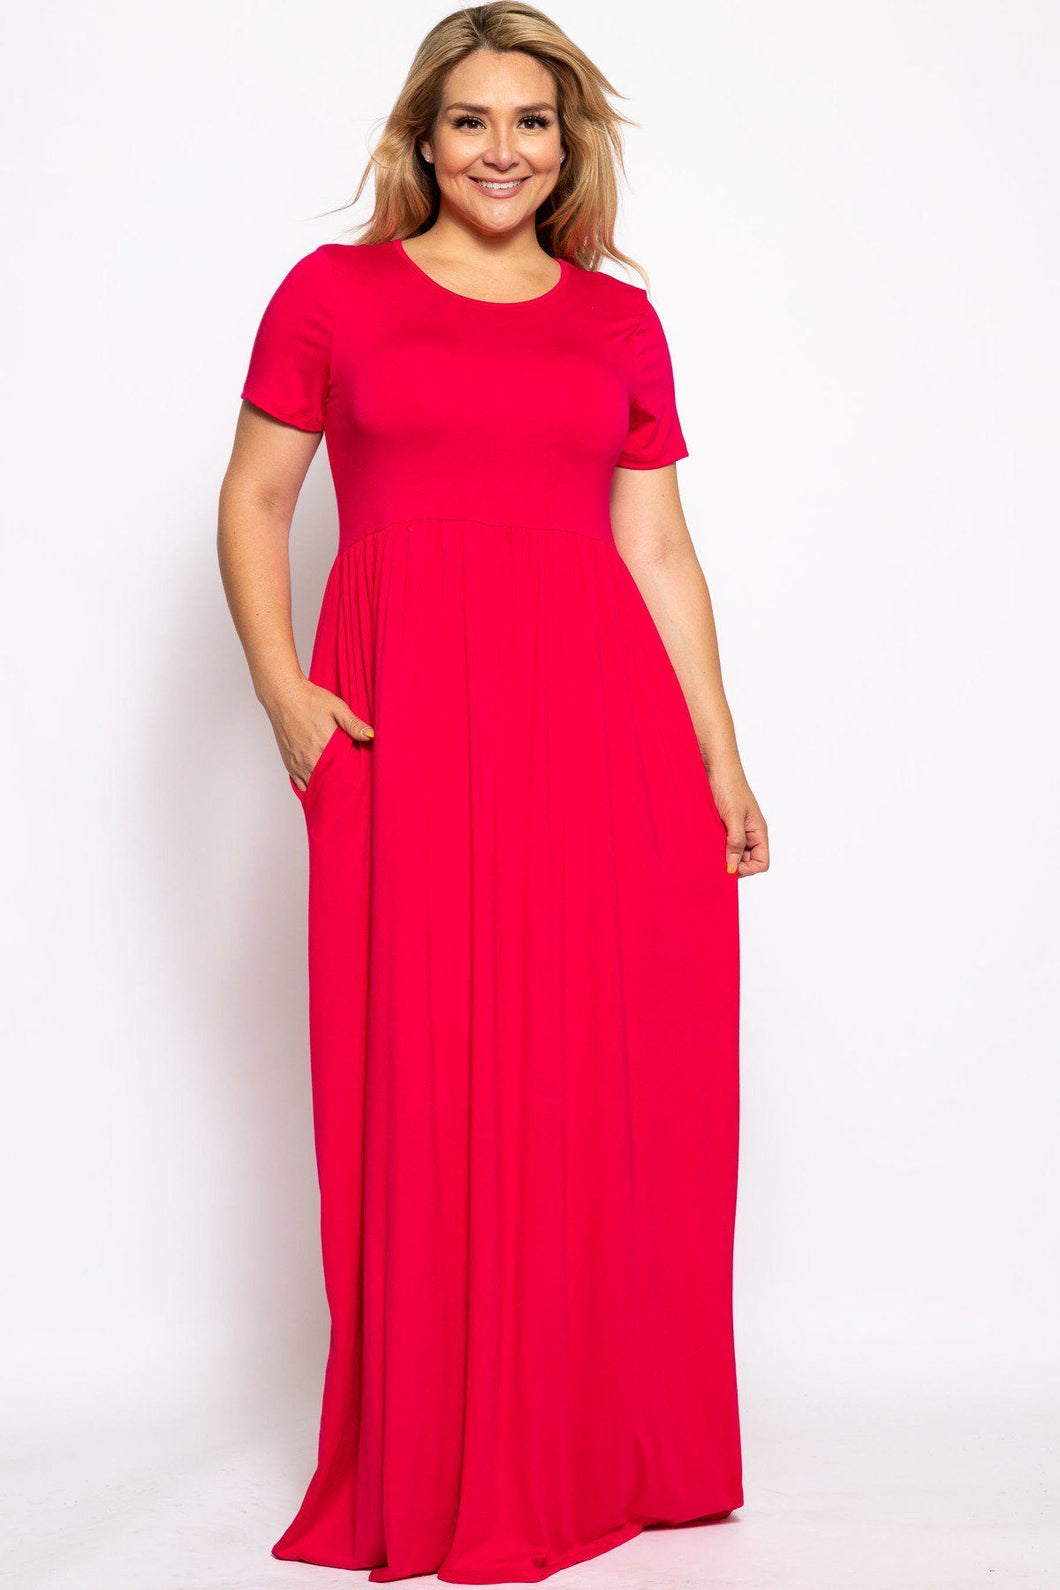 Vibrant Short Sleeved Maxi Dress